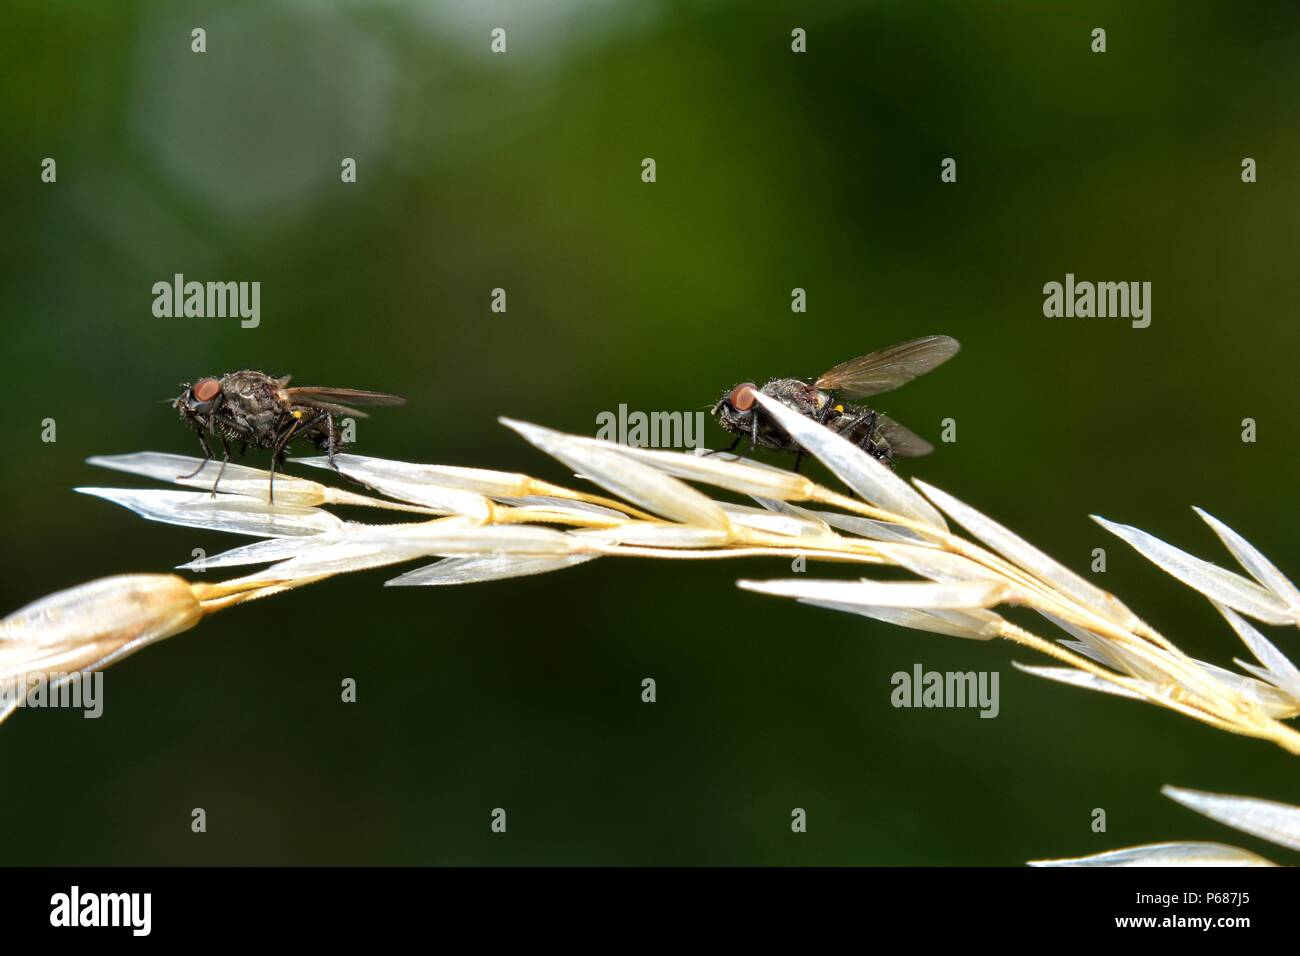 Two Flys  sits on  plant in green nature - Stock Image